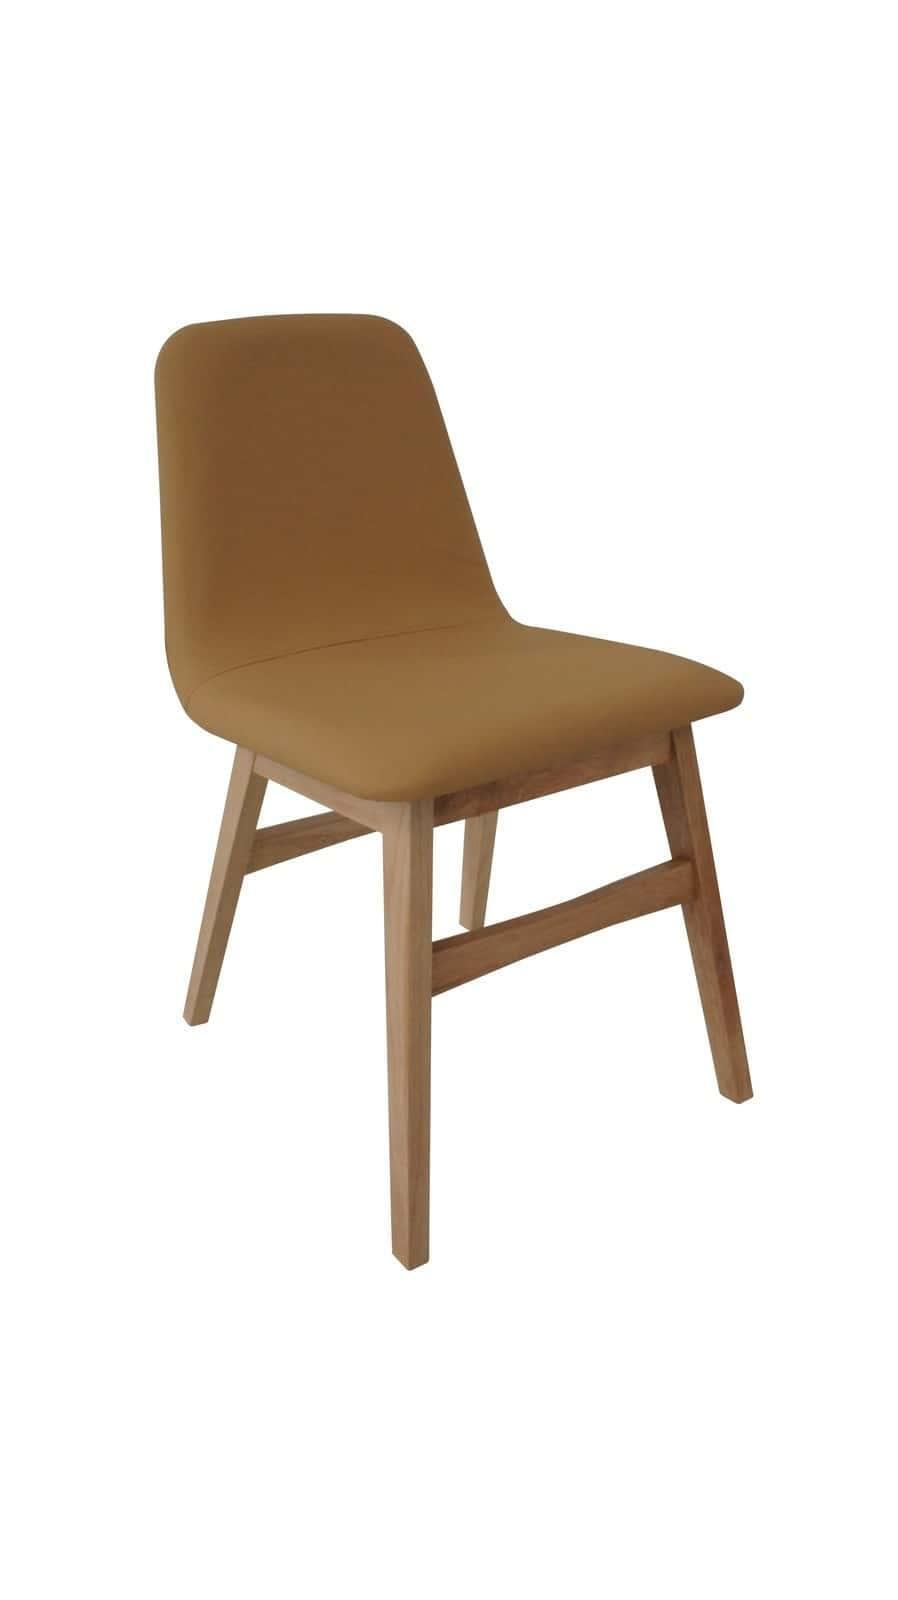 Buy annie scandinavian style dining chair online for Swedish style dining chairs